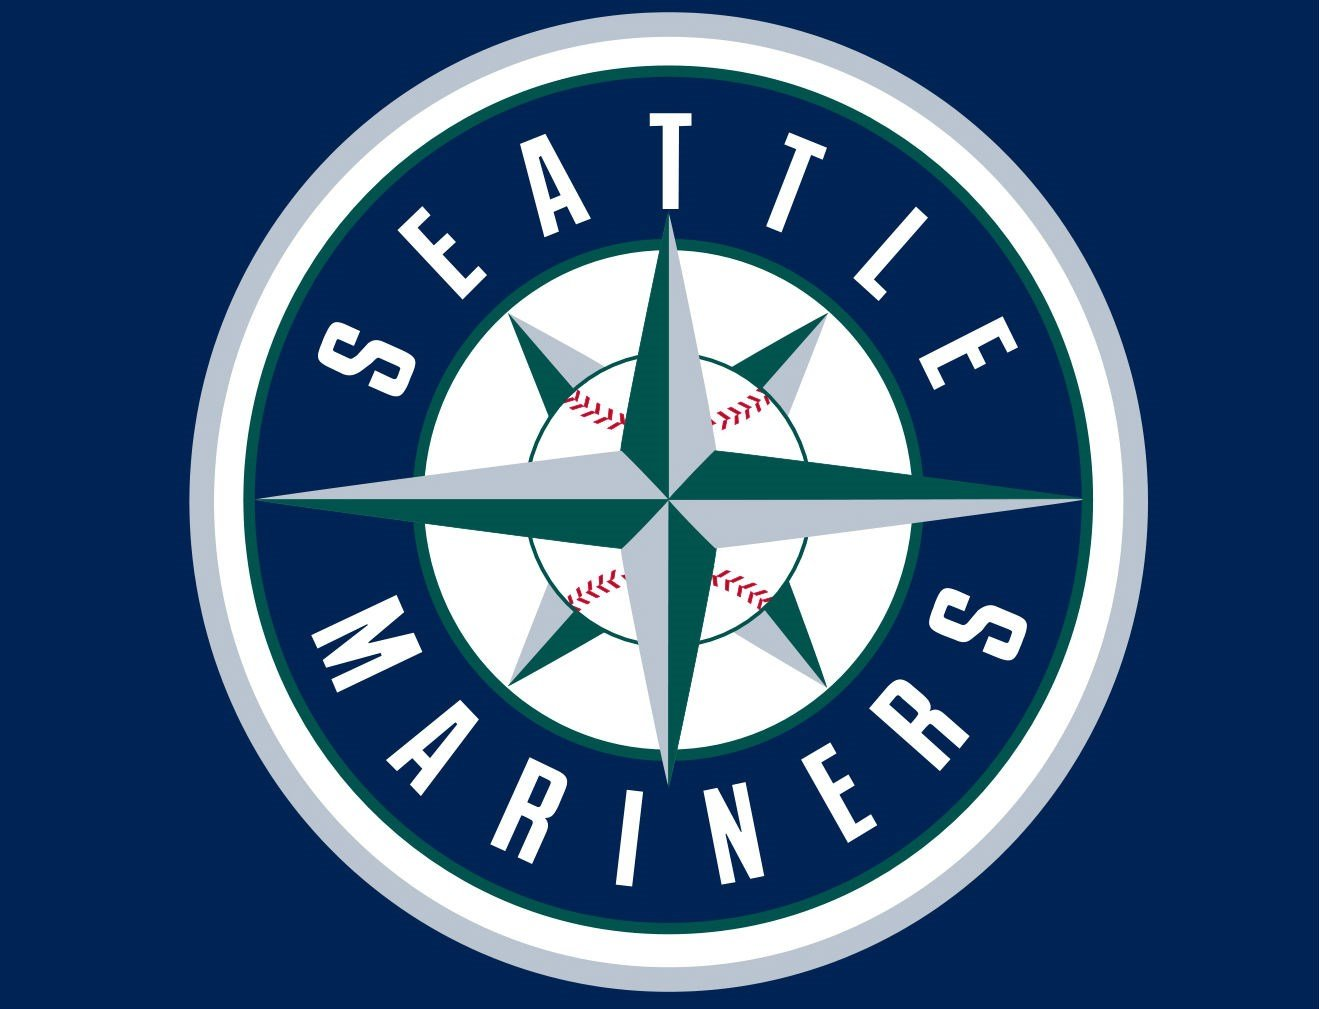 Mariners win 6th straight game